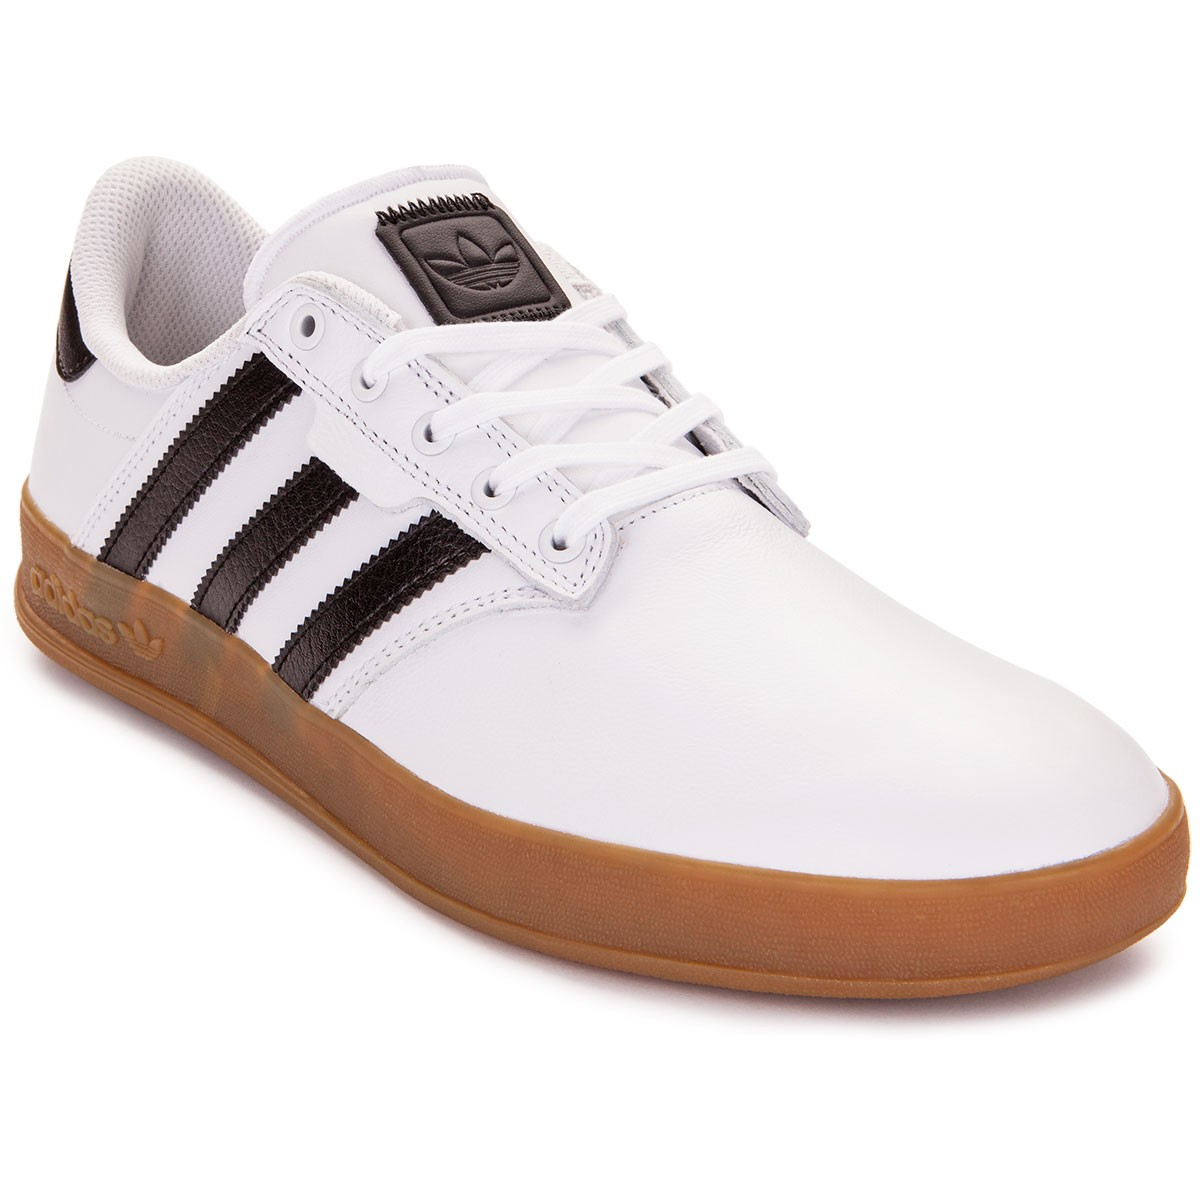 Adidas Seeley Cup Shoes - White Black Gum - 4.0 f1de92da3